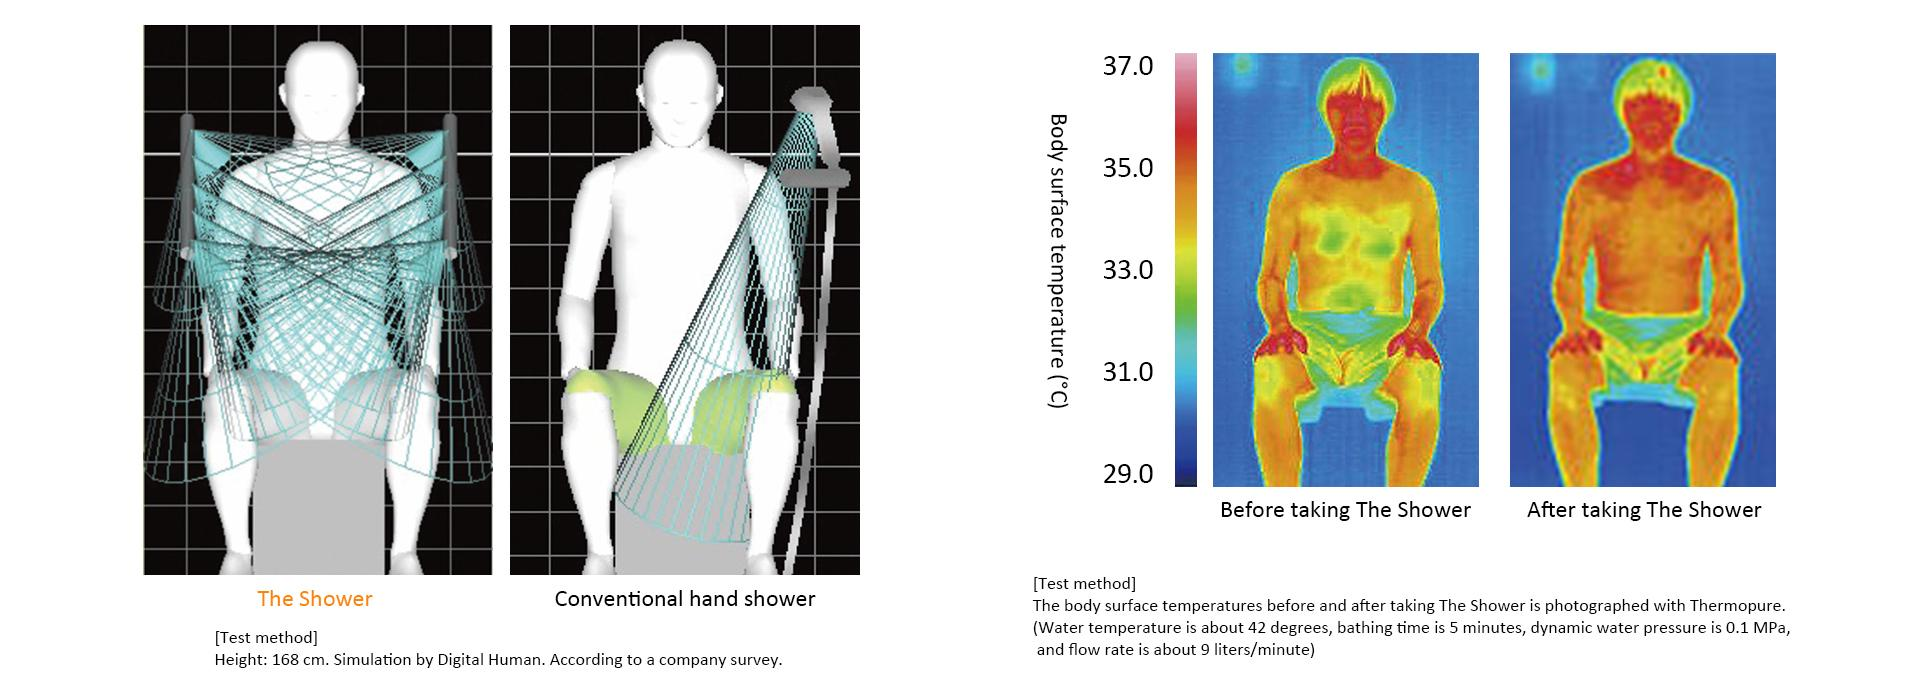 image: Comparison of the area of spraying and body surface temperature